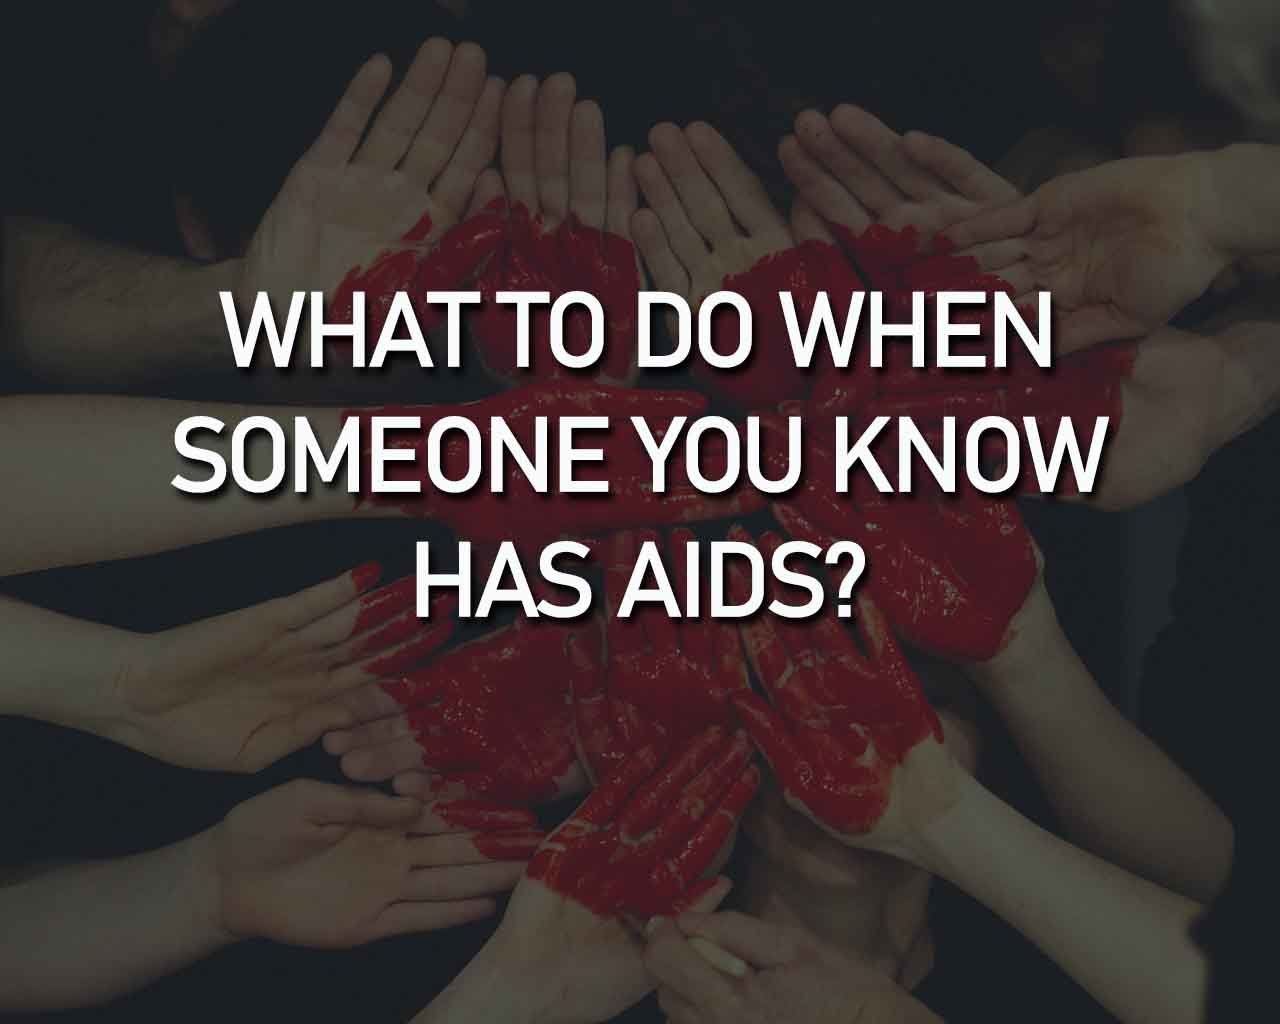 what to do when someone you know has aids - world aids day